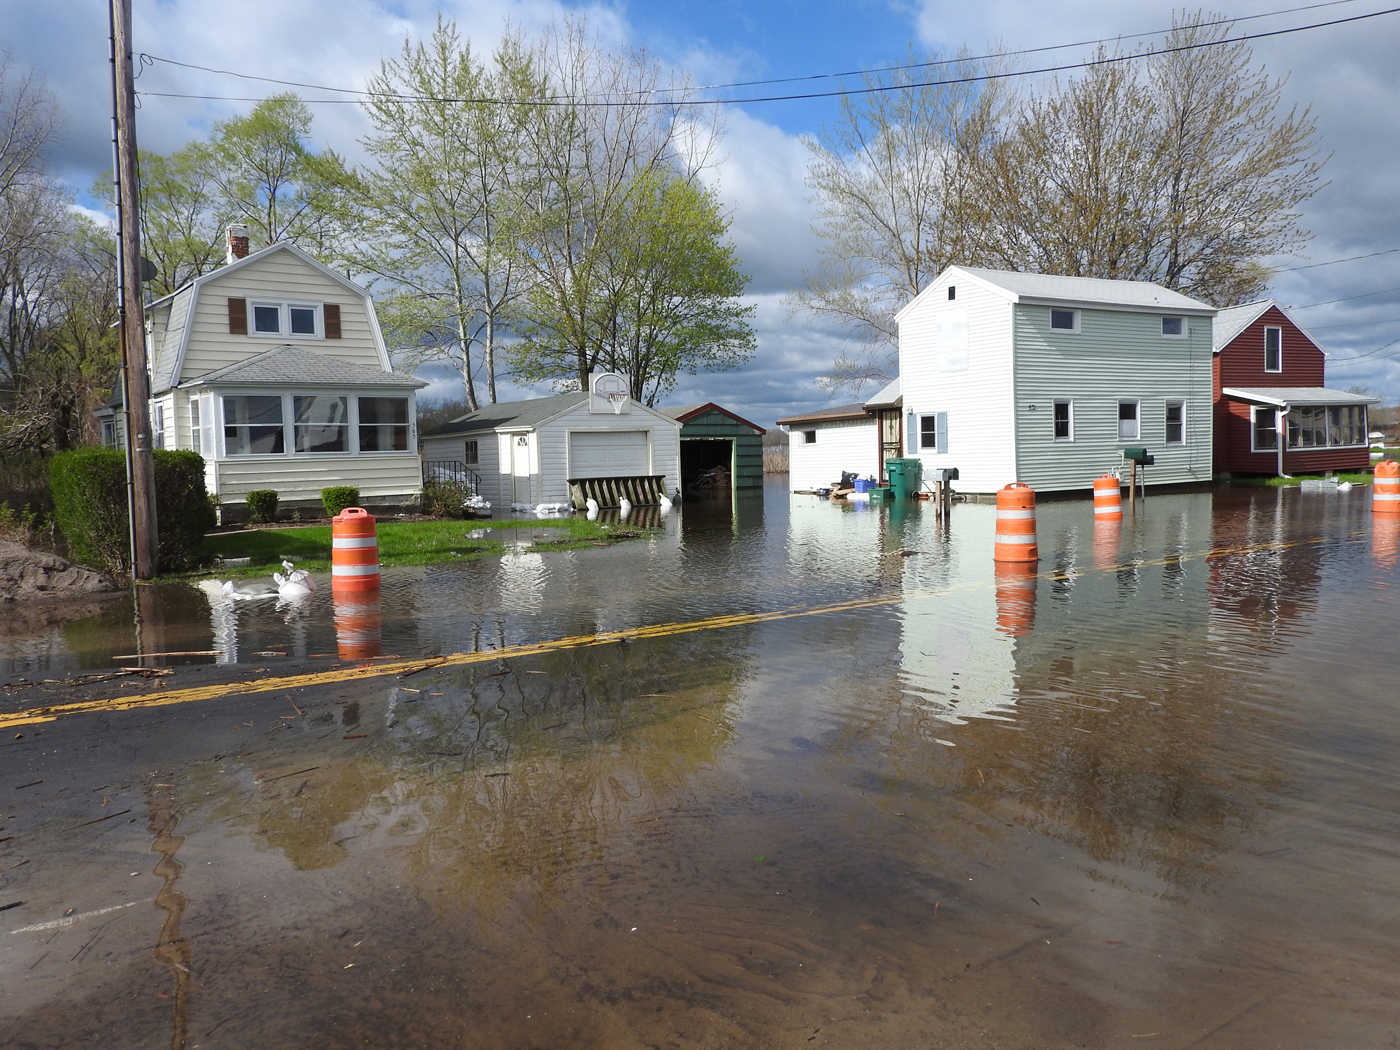 May 2017 flooding along Edgemere Drive in Greece. Photo by Karen Fien